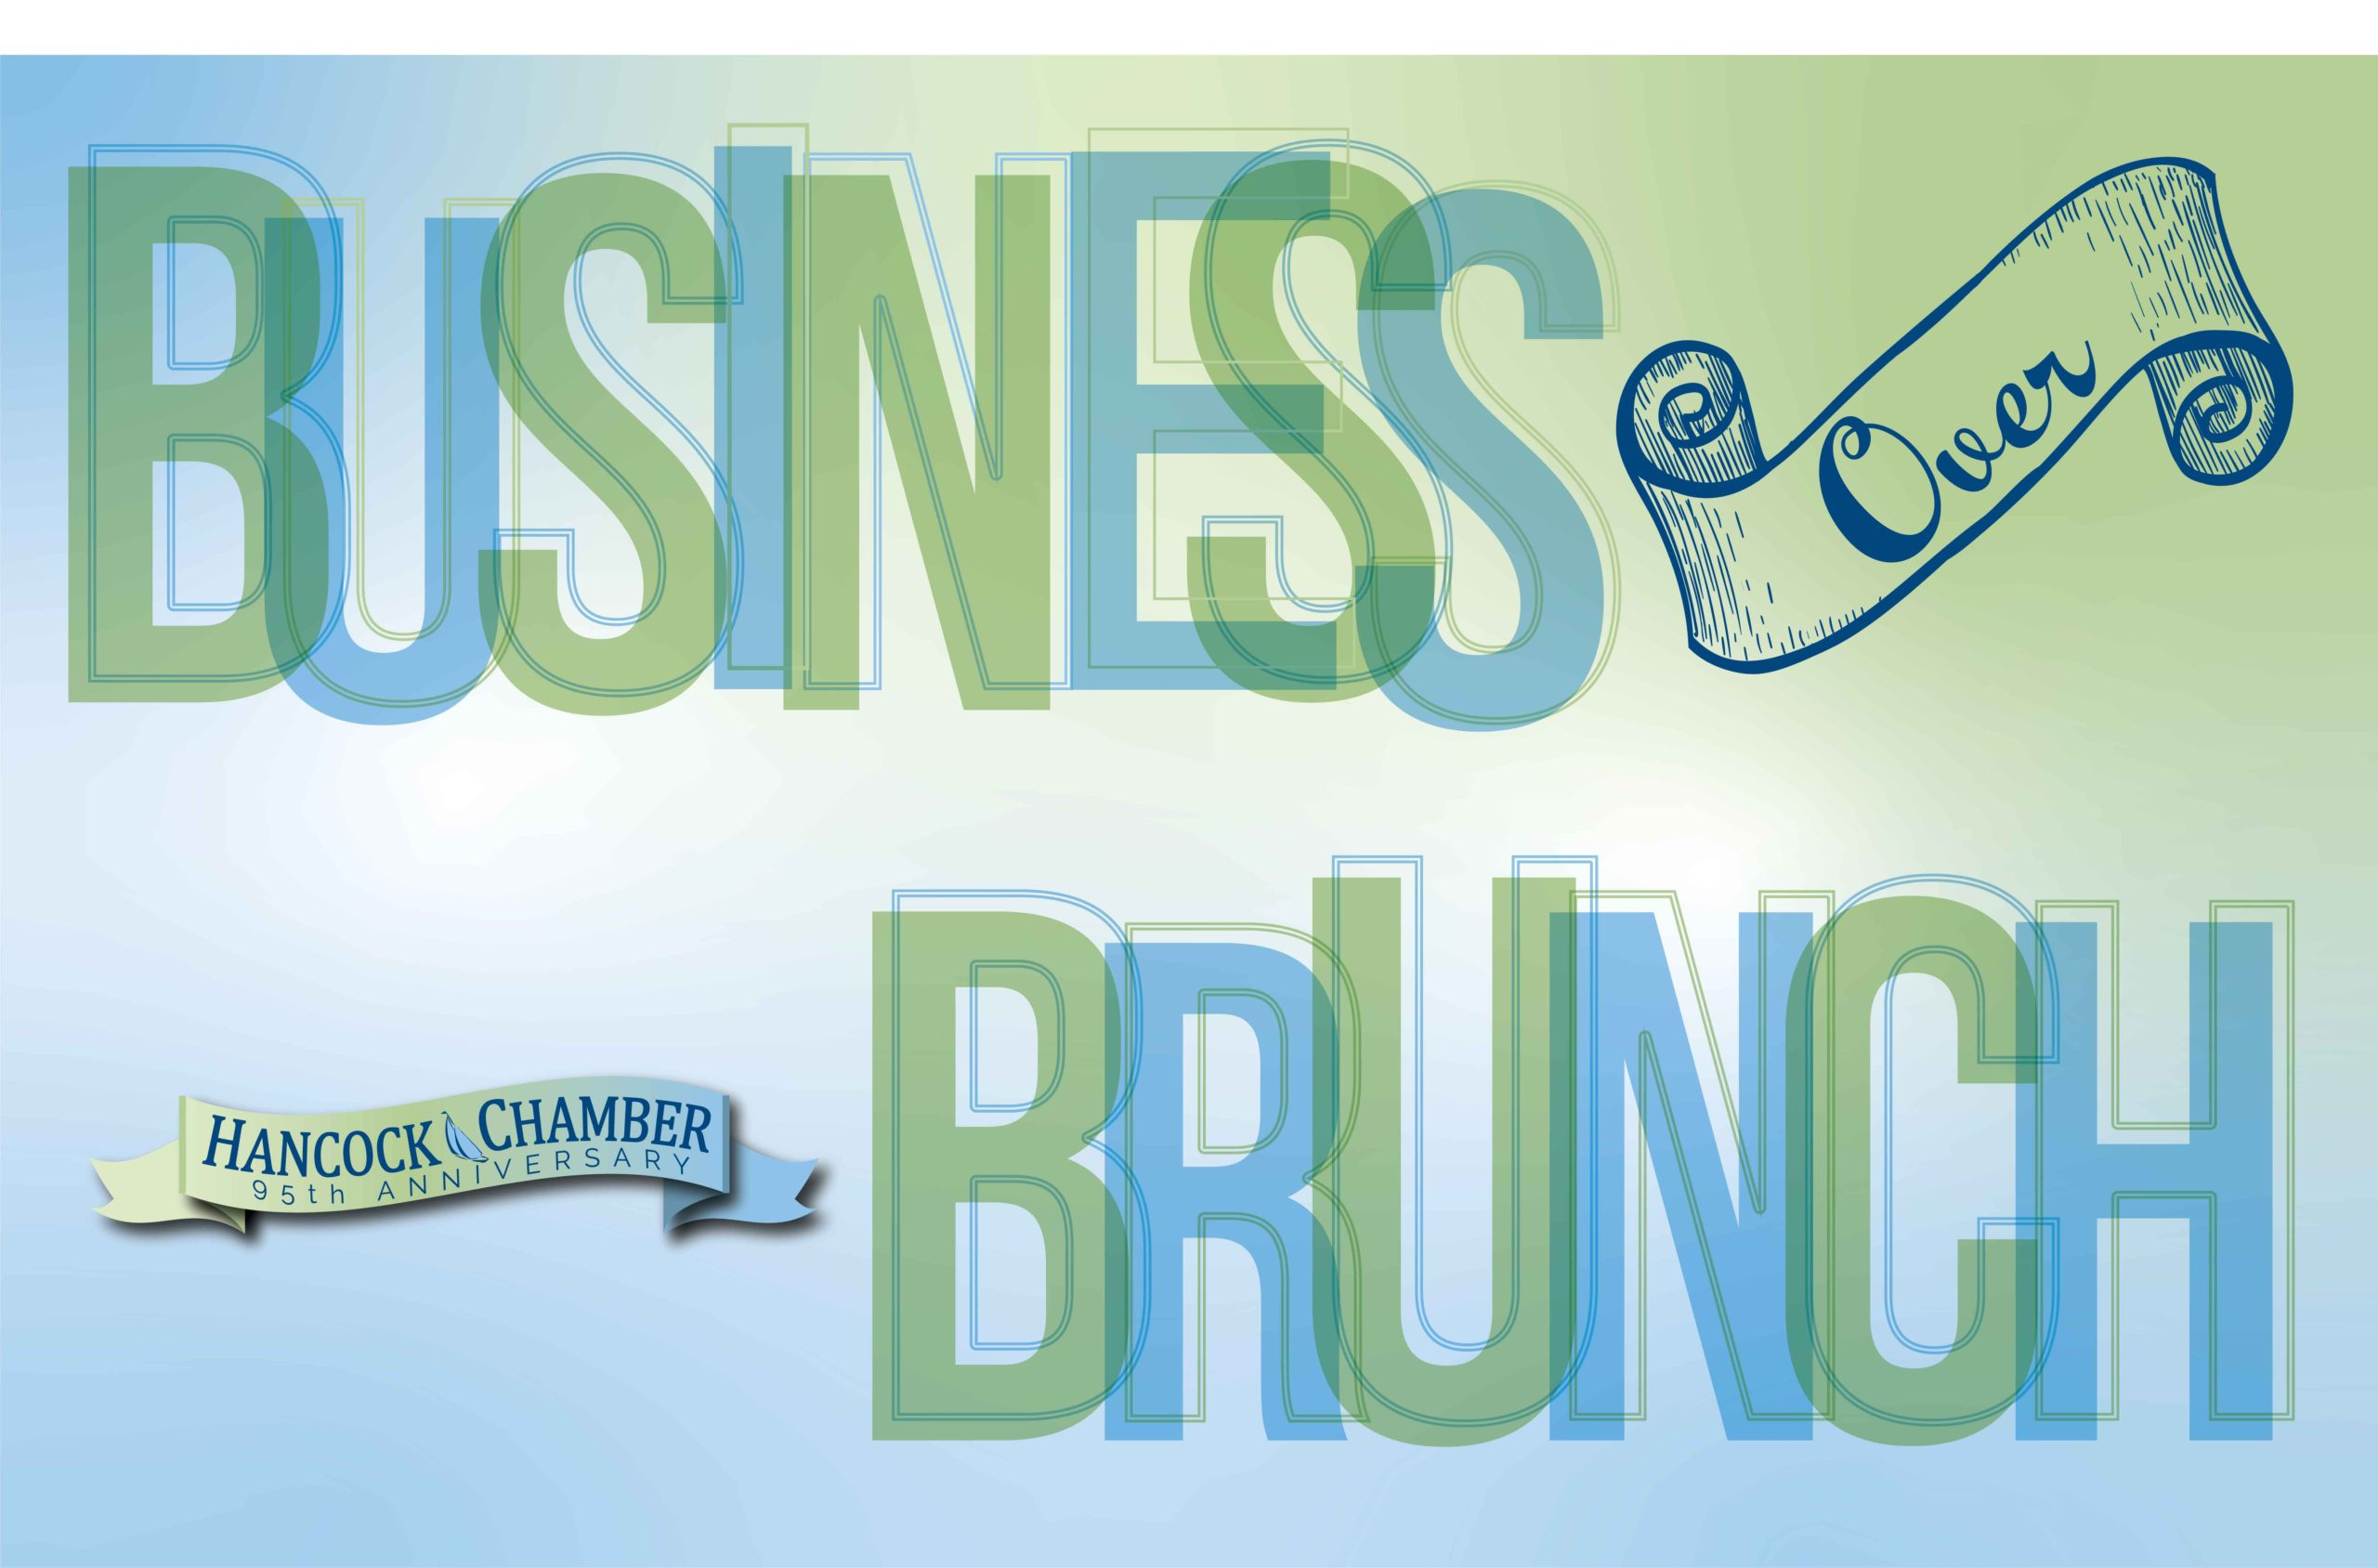 STATE OF THE COUNTY ADDRESS/HANCOCK CHAMBER ANNUAL BUSINESS MEETING TO TAKE PLACE THURSDAY, MAY 13TH